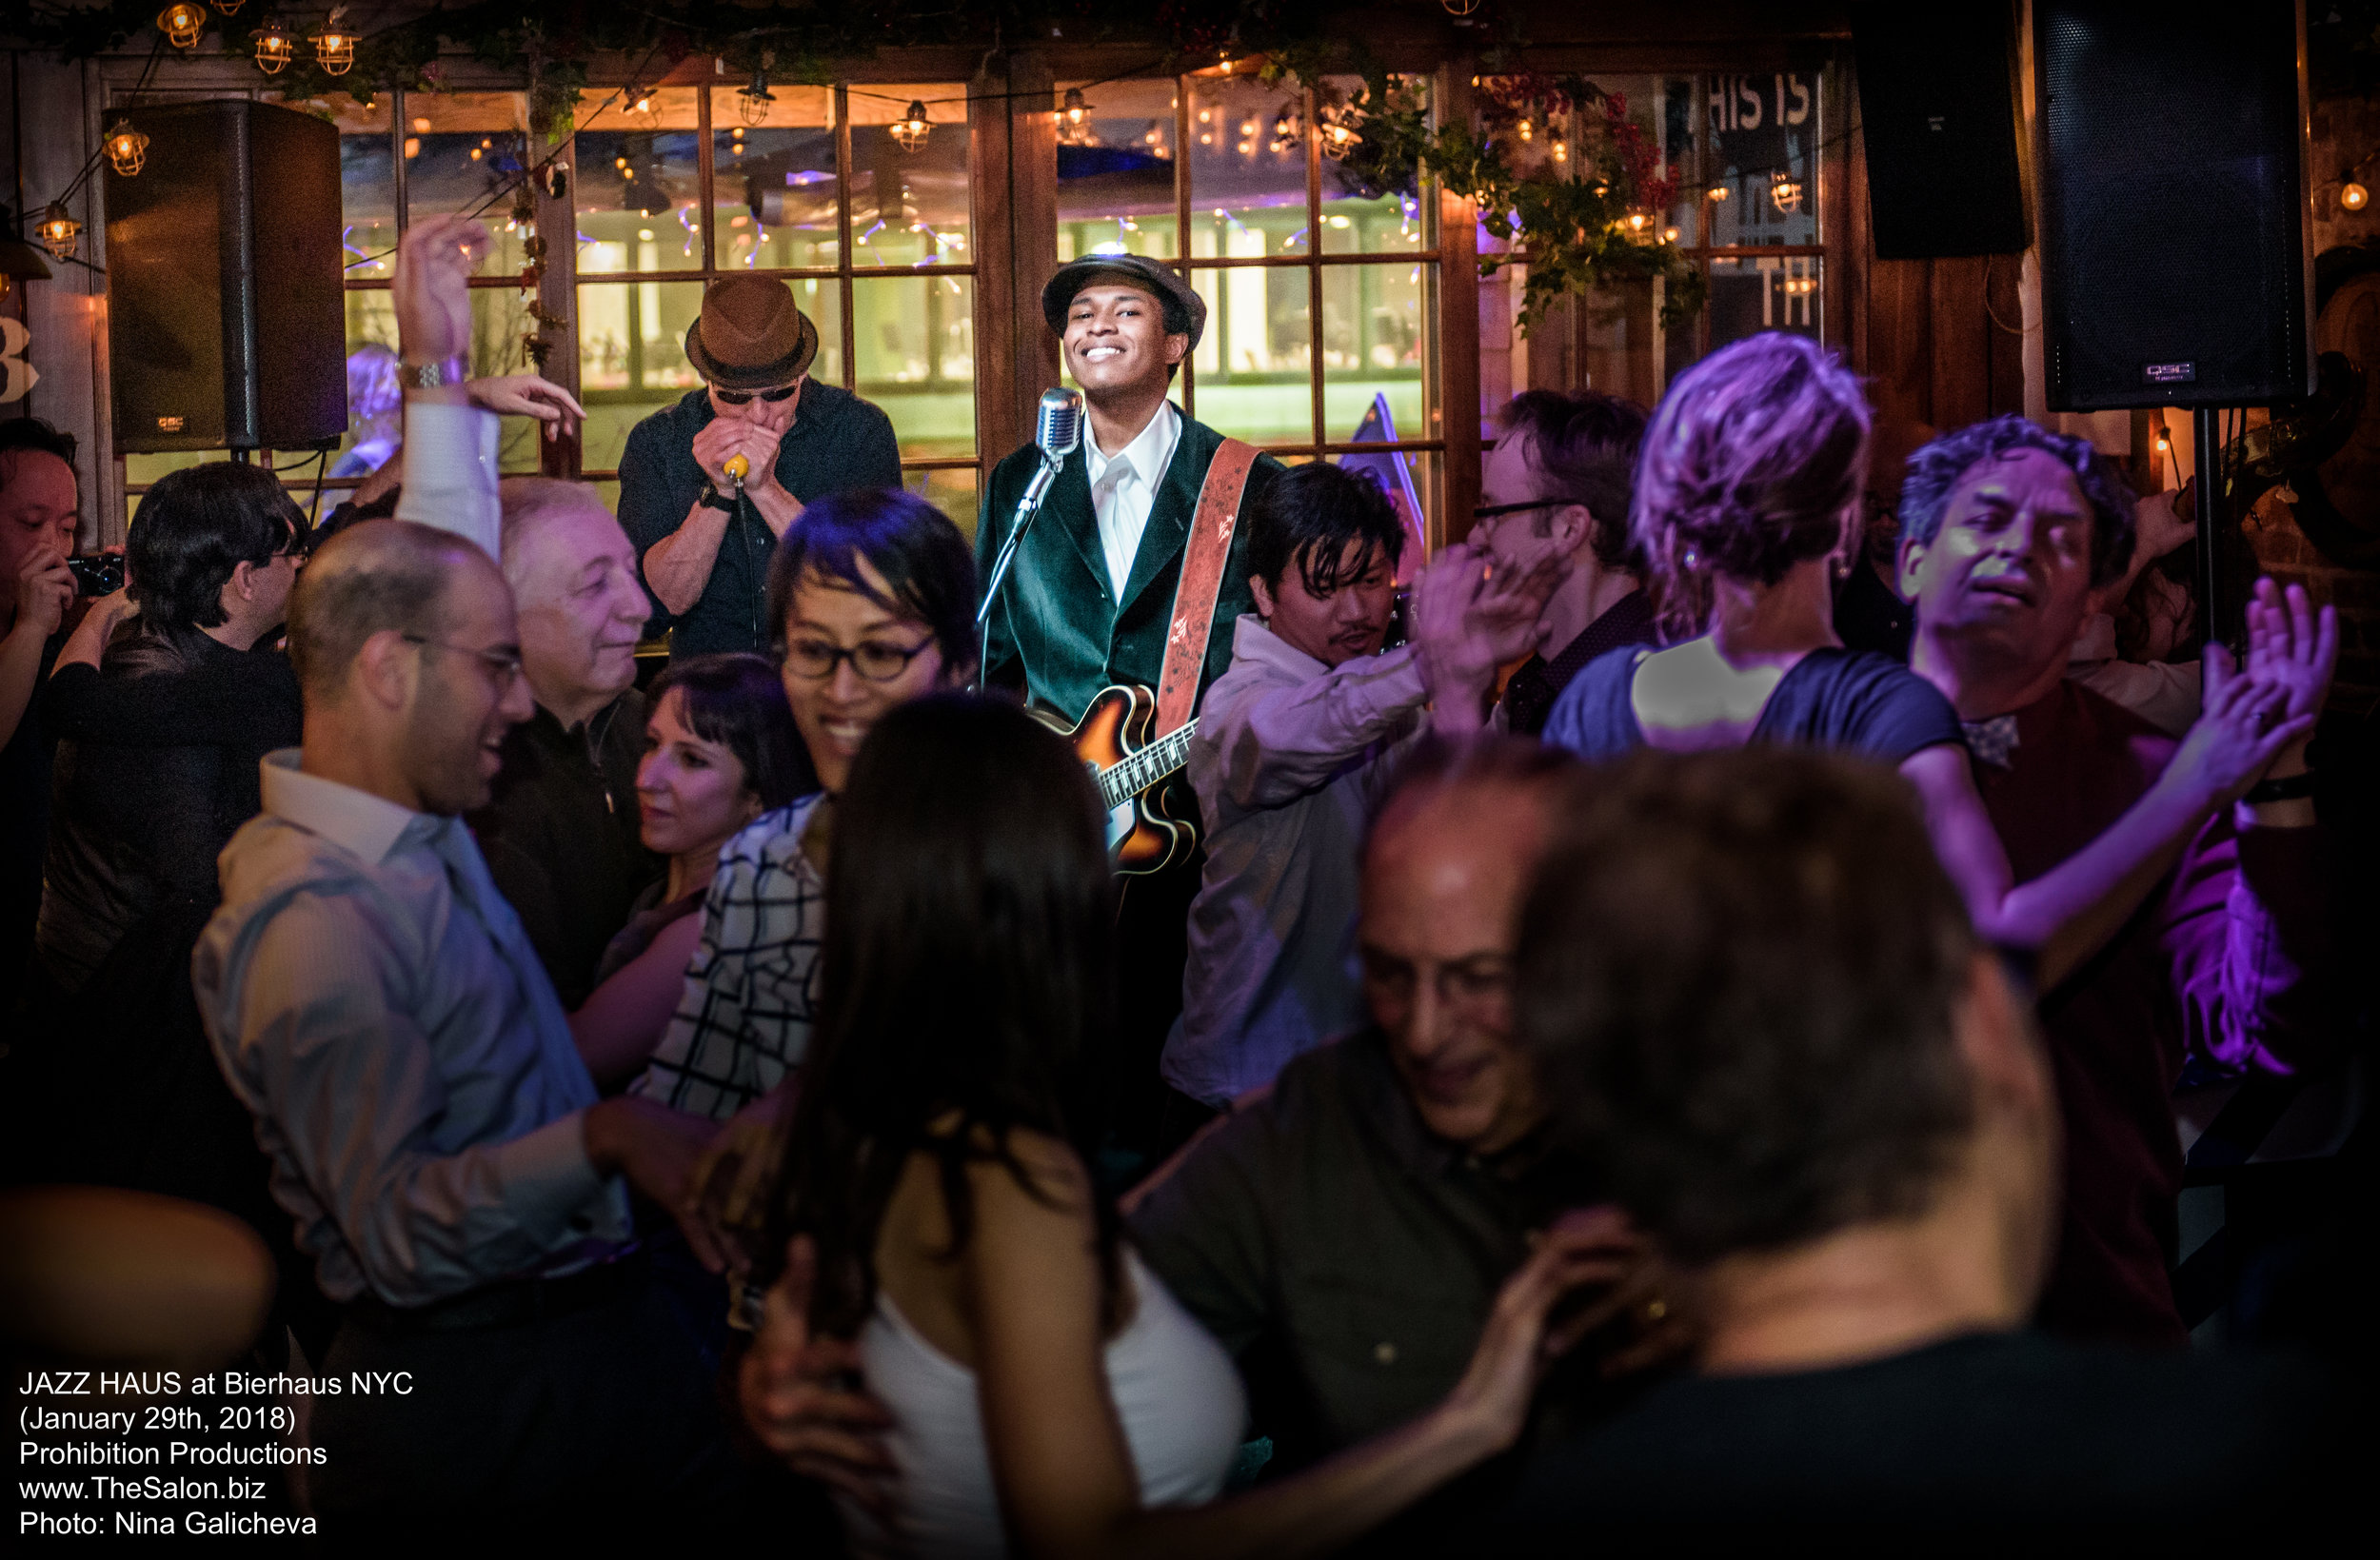 Live Music Monday through Saturday - Whether you like jazz, polka, or alternative covers of your favorite songs; we're sure you'll love our haus bands. Mondays feature live burlesque performances and on Tuesday we hold our quirky trivia night hosted by The Polka Brothers.